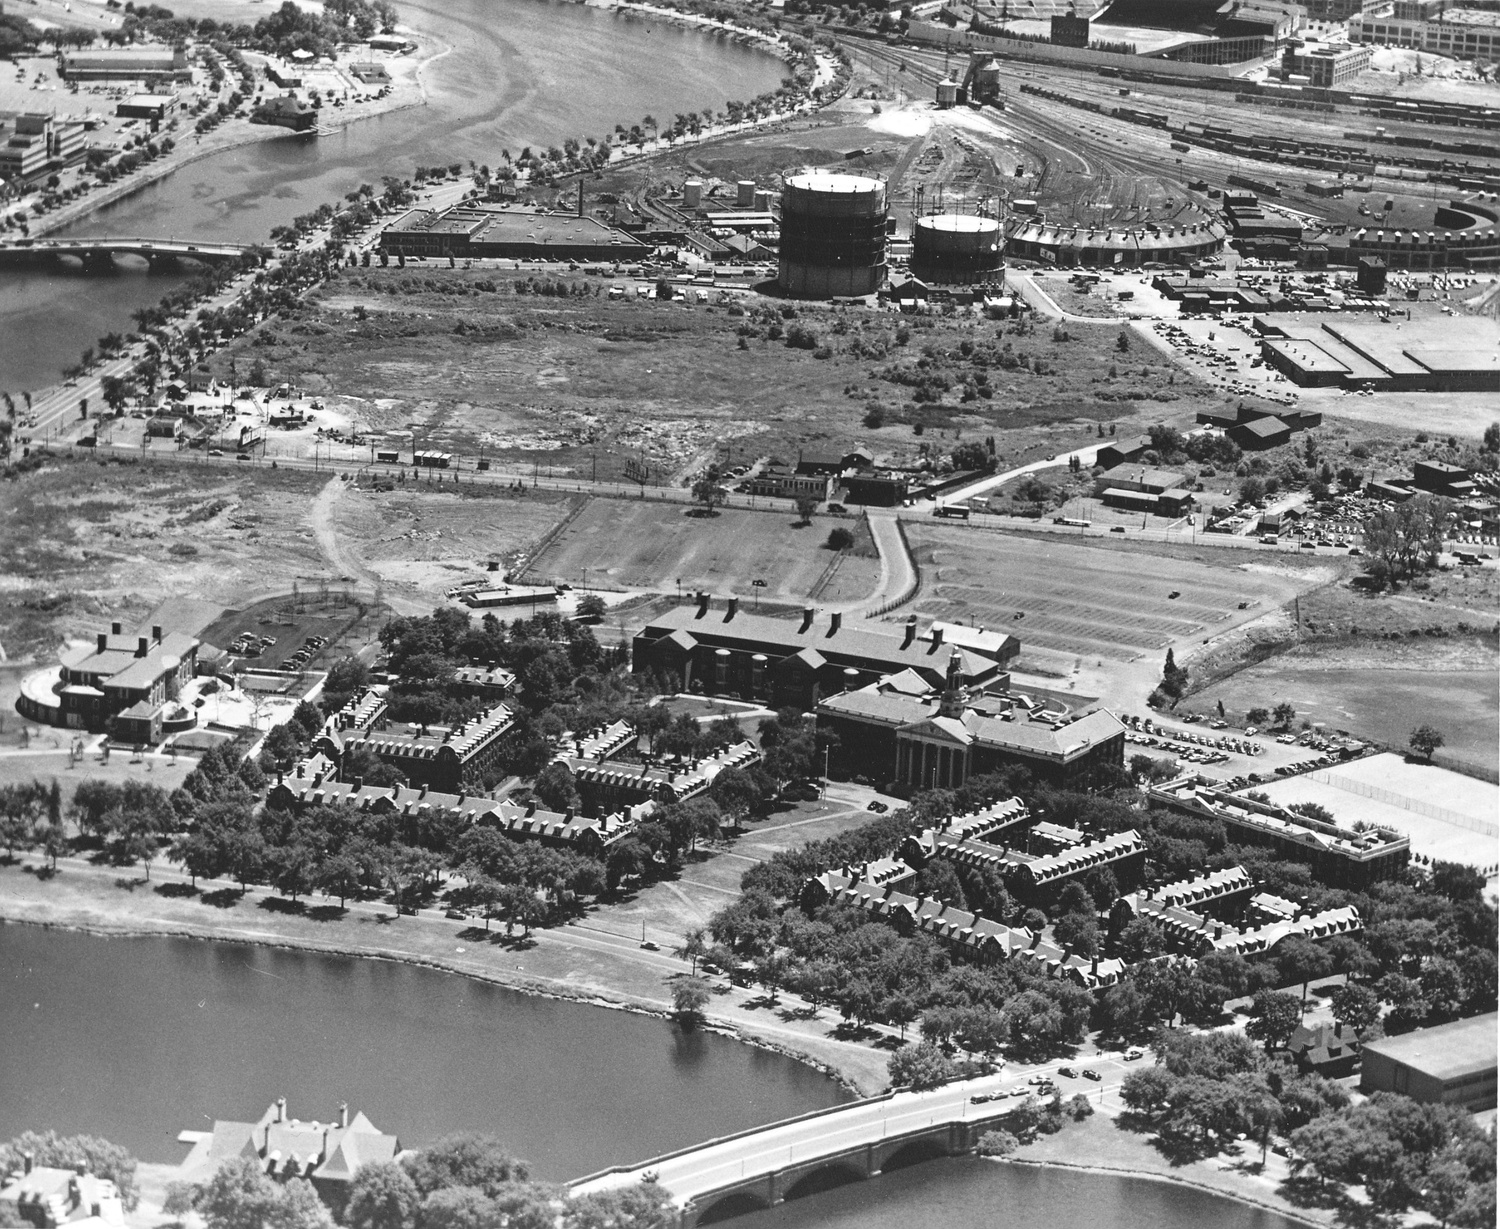 By the 1950s , Harvard had already constructed its business school across the Charles. Western Ave (running right to left across center), however, remained largely barren. The current site of Harvard's SEAS Complex would be dead left from center in this photo.